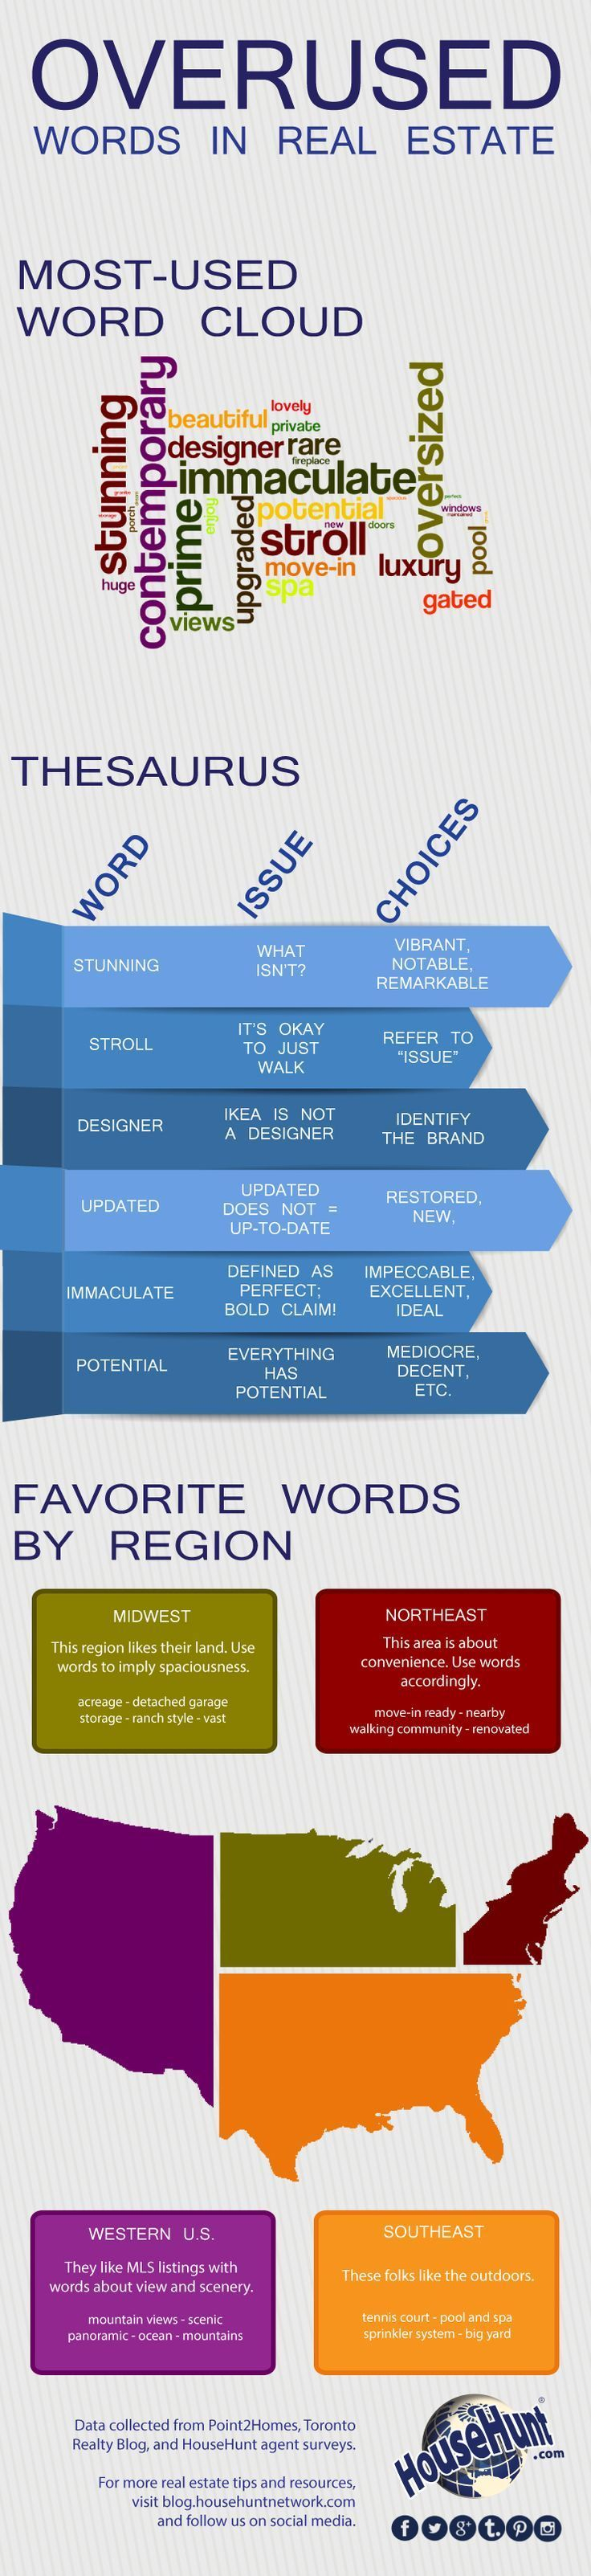 Overused Words in Real Estate #realestate #realtor #marketing #escrow https://www.facebook.com/CollegeEscrowInc #realestateschool